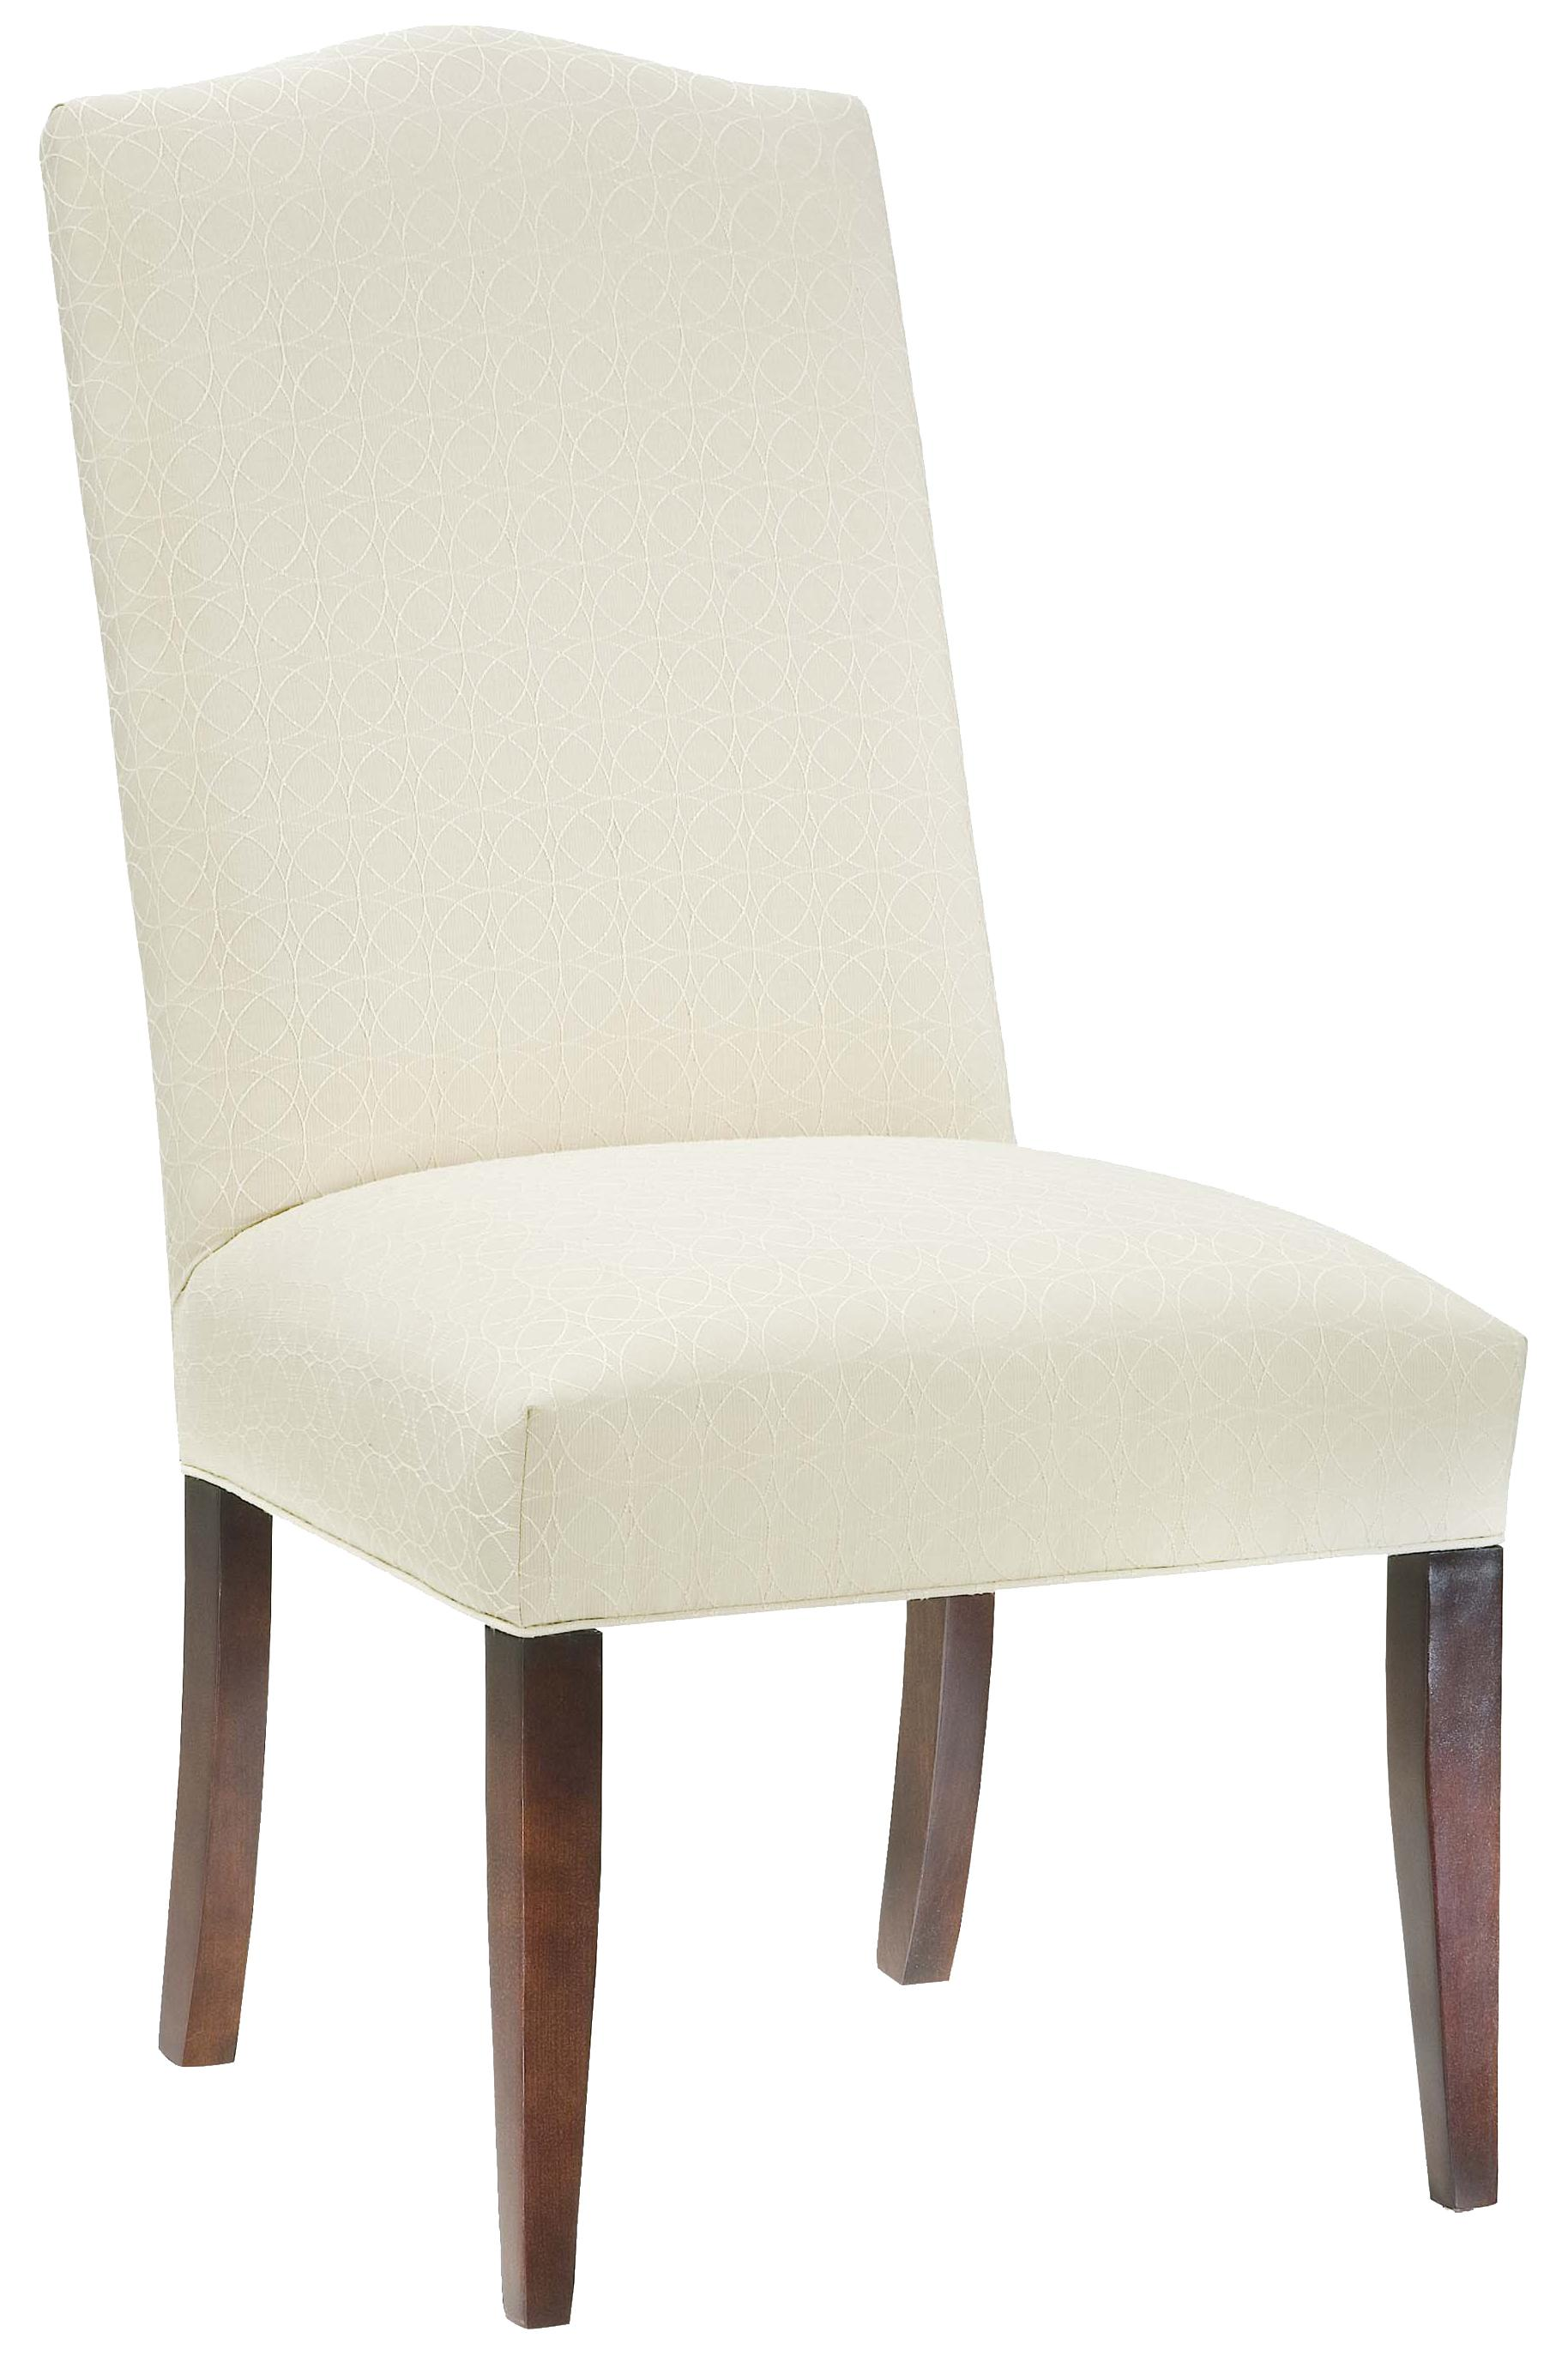 Fairfield Chairs Upholstered Side Chair - Item Number: 6013-05